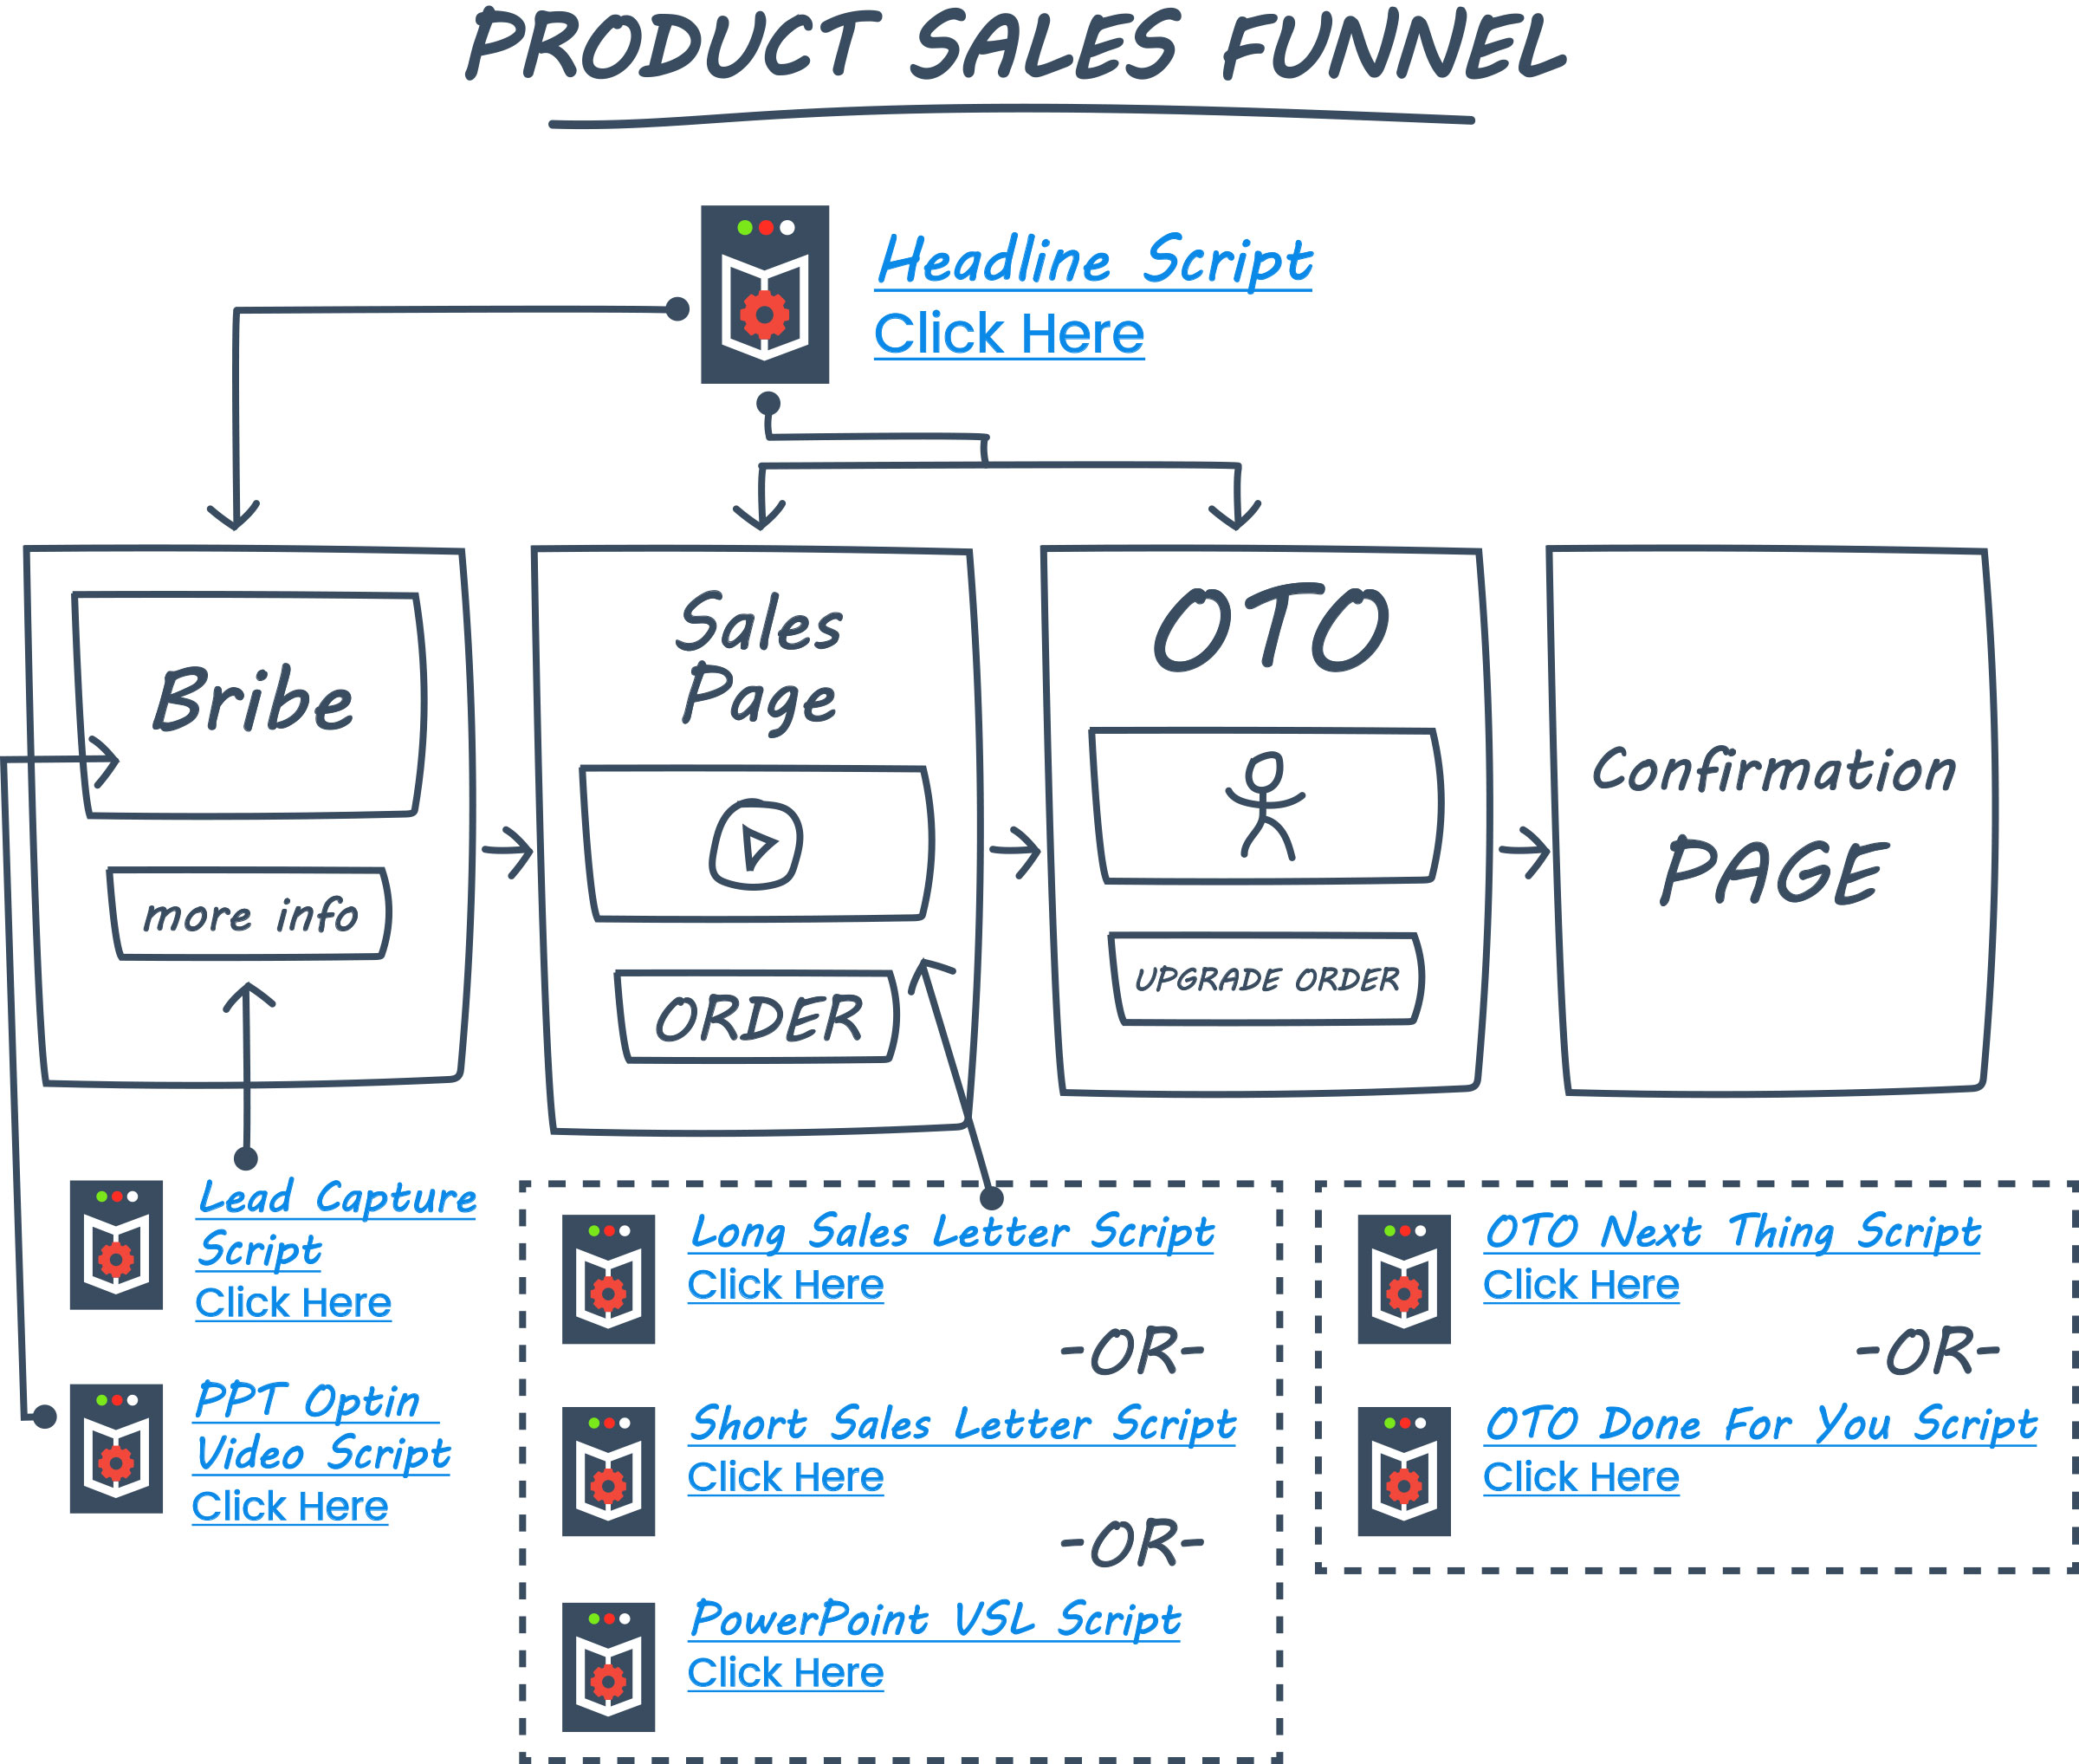 Product Sales Funnel | ClickFunnels